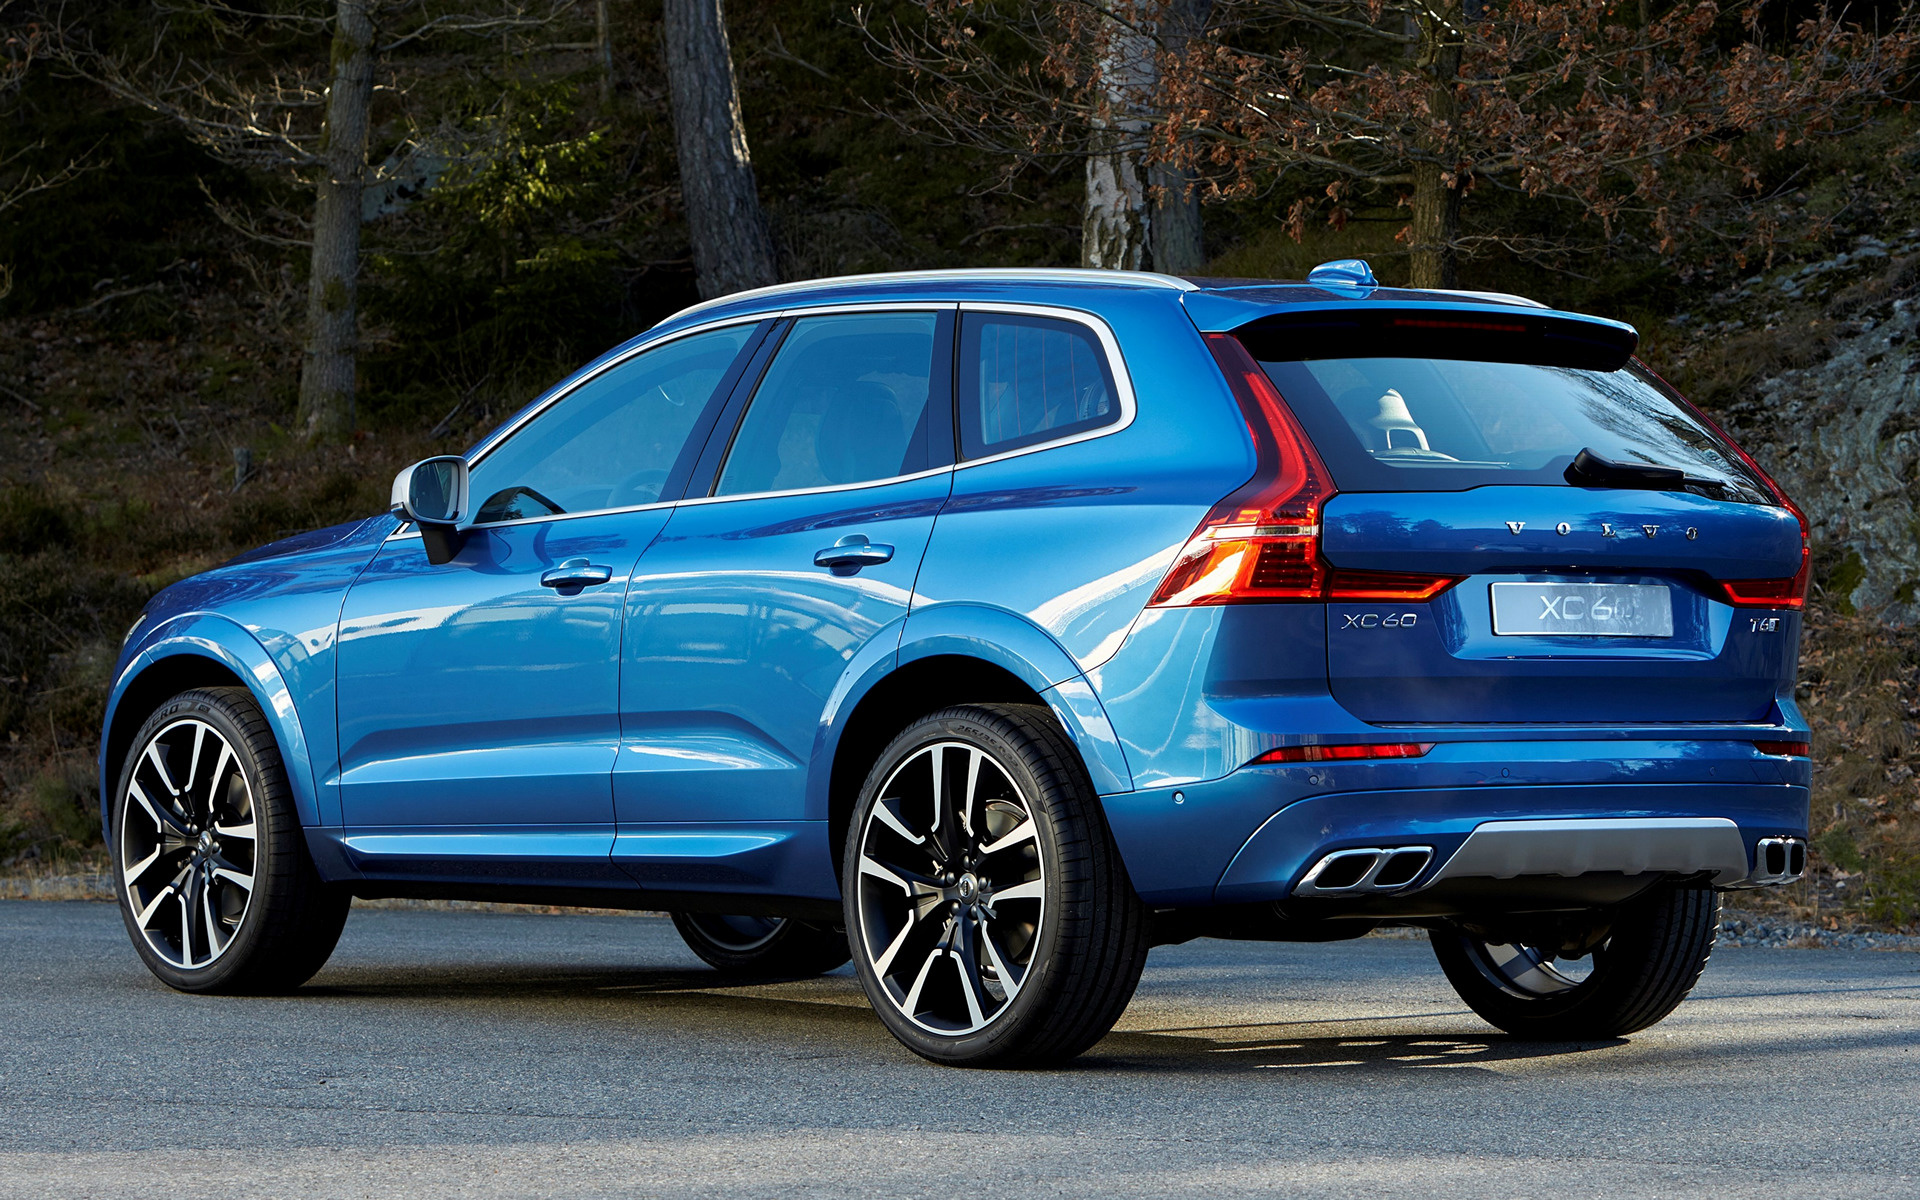 Volvo XC60 R-Design (2017) Wallpapers and HD Images - Car Pixel